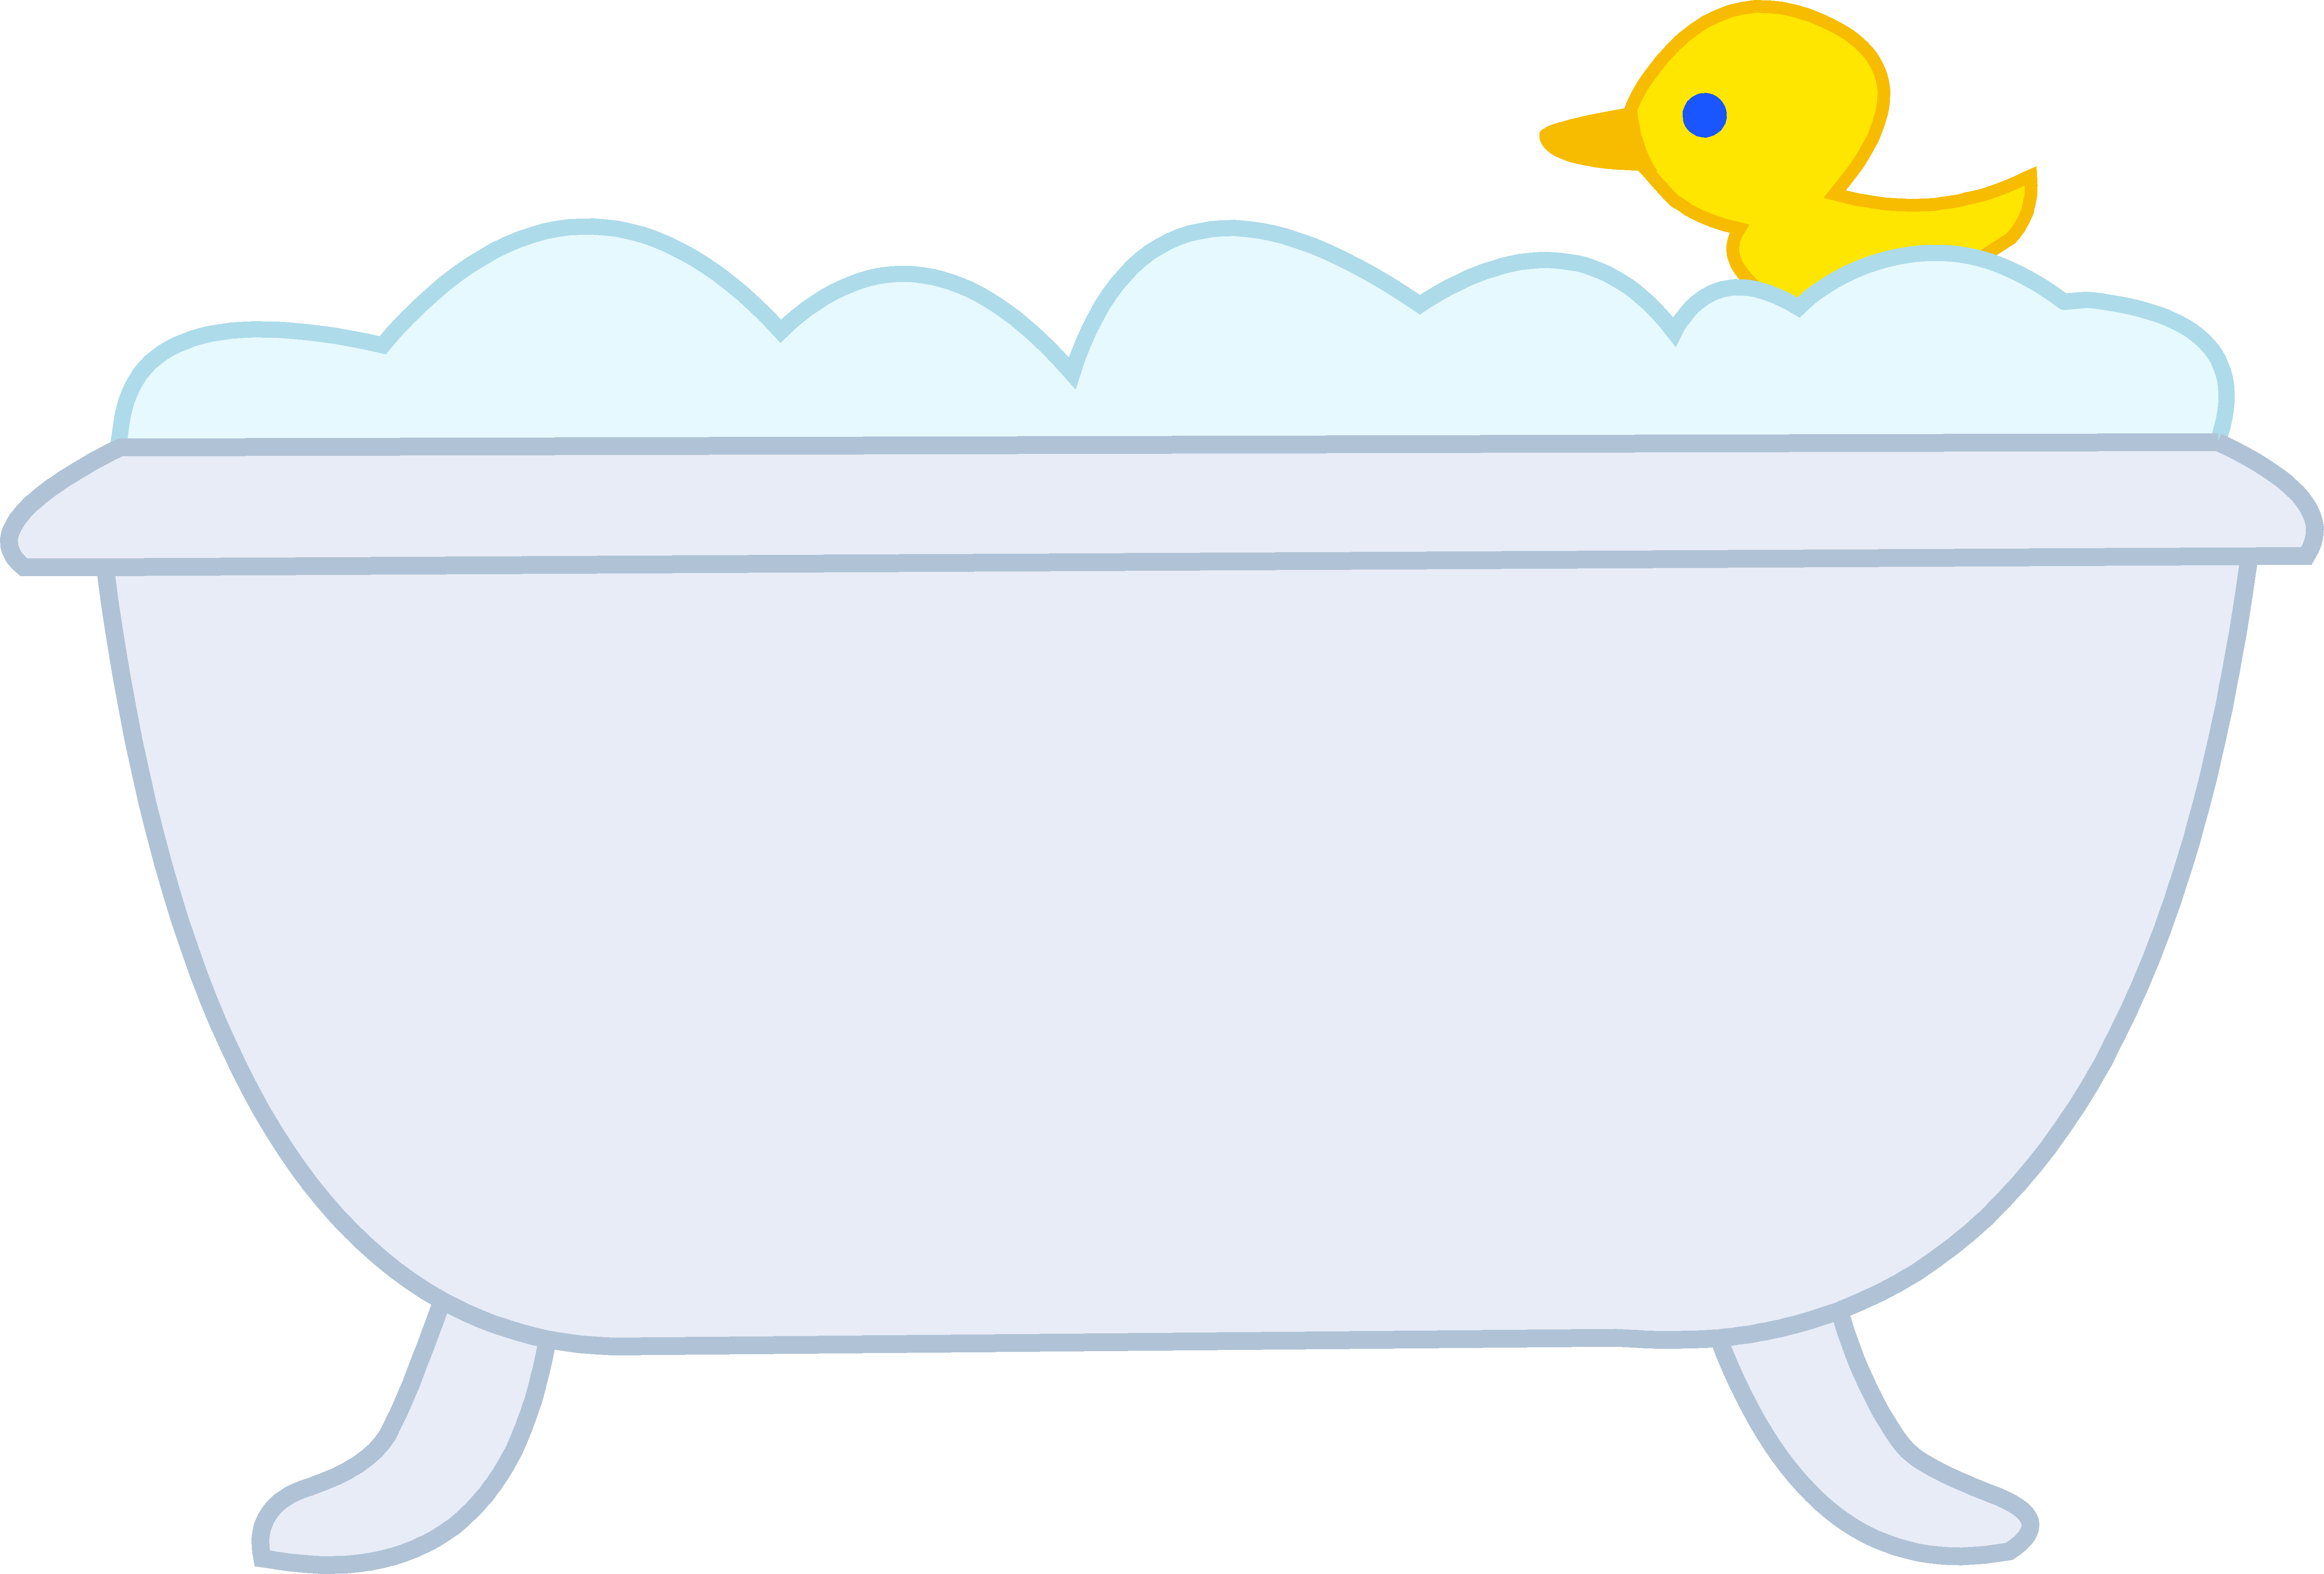 graphic freeuse Simple free on dumielauxepices. Bathtub clipart fancy.